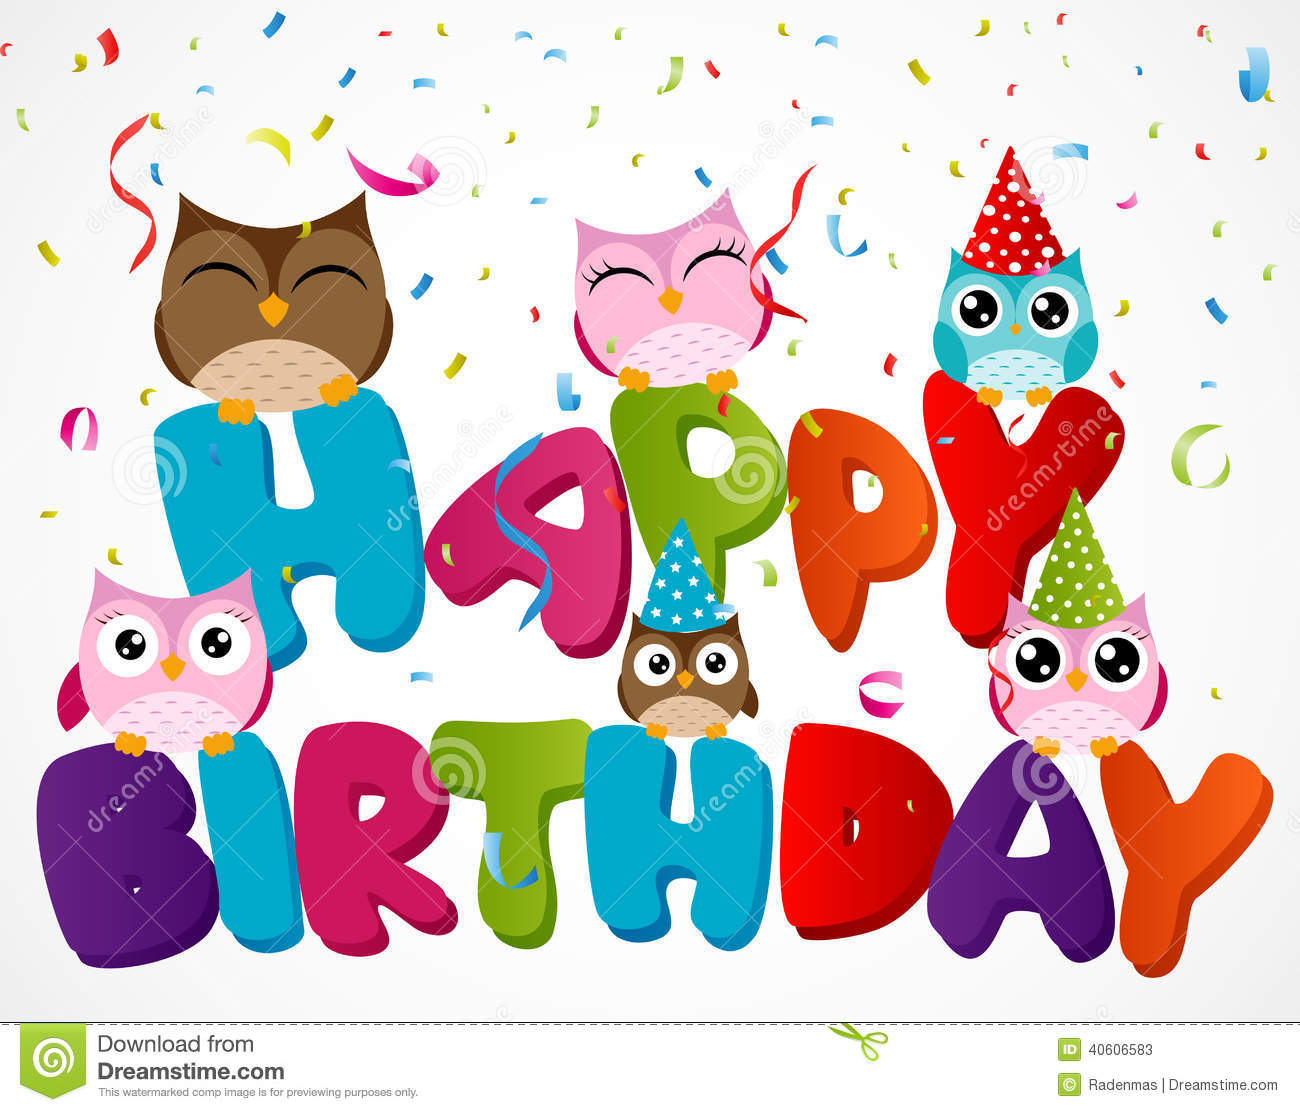 Happy Birthday Card With Owl Stock Vector - Illustration of festival, doodle: 40606583